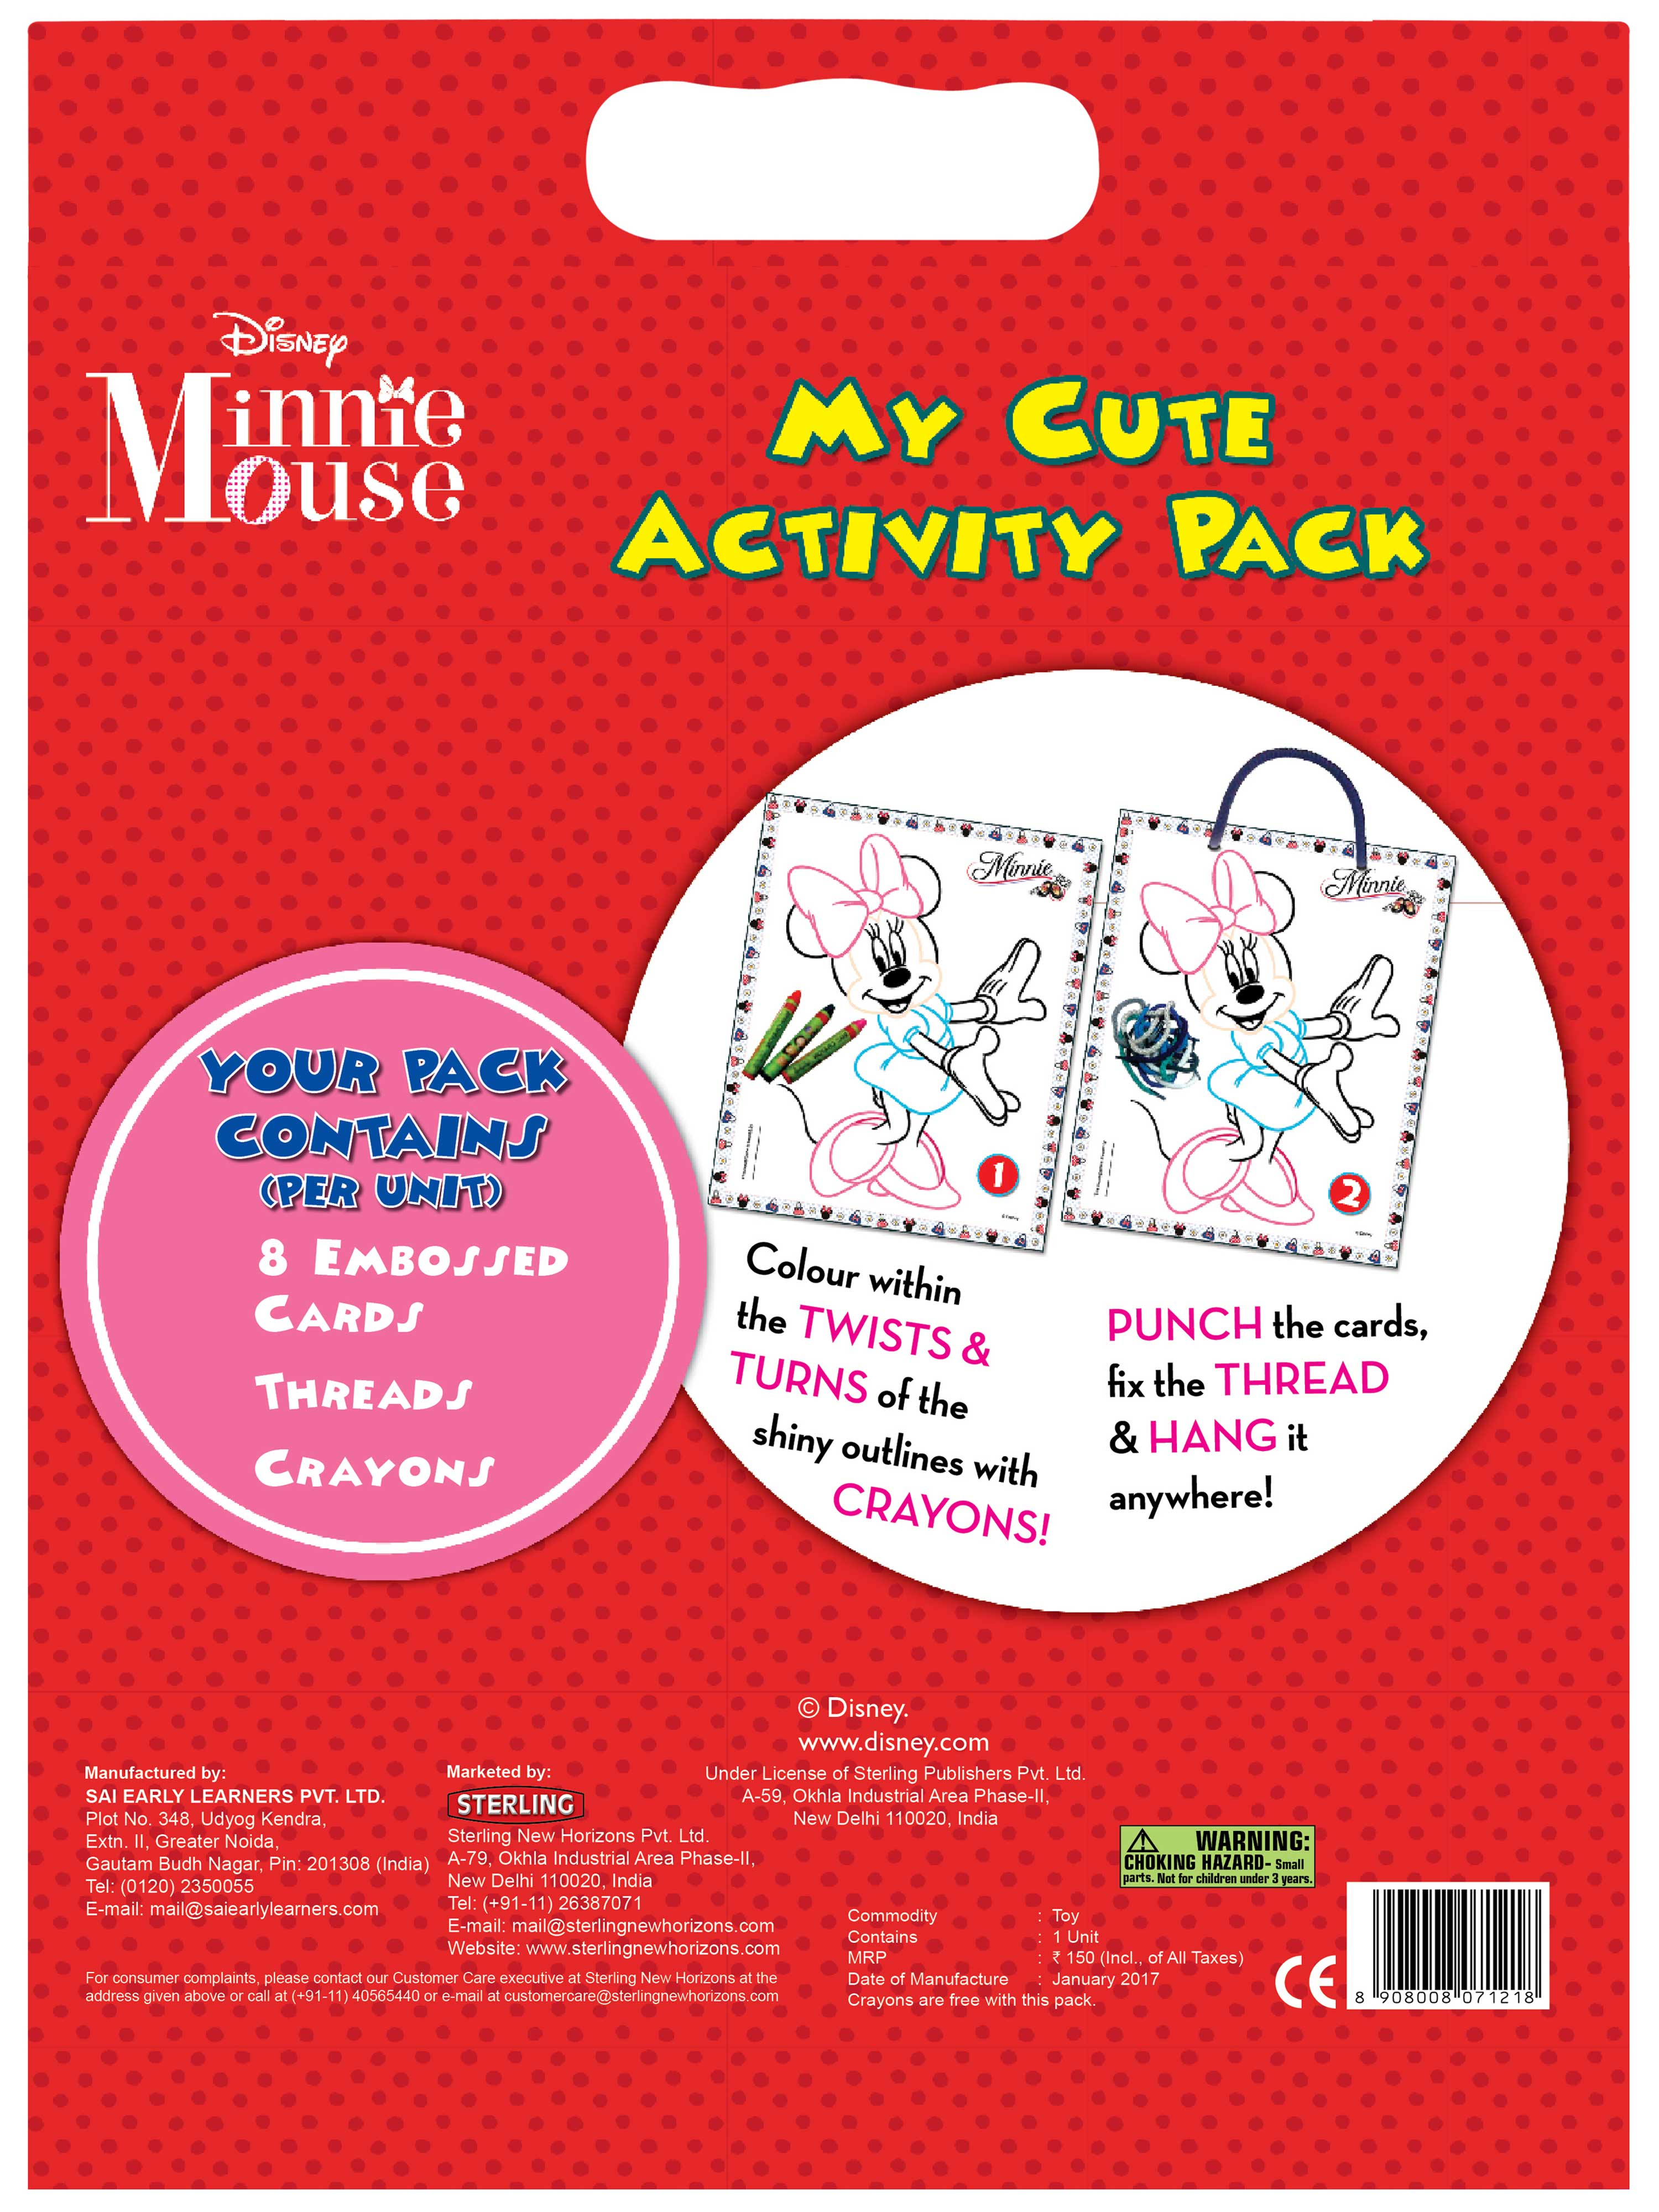 My Cute Activity Pack-Minnie Mouse Bumpy